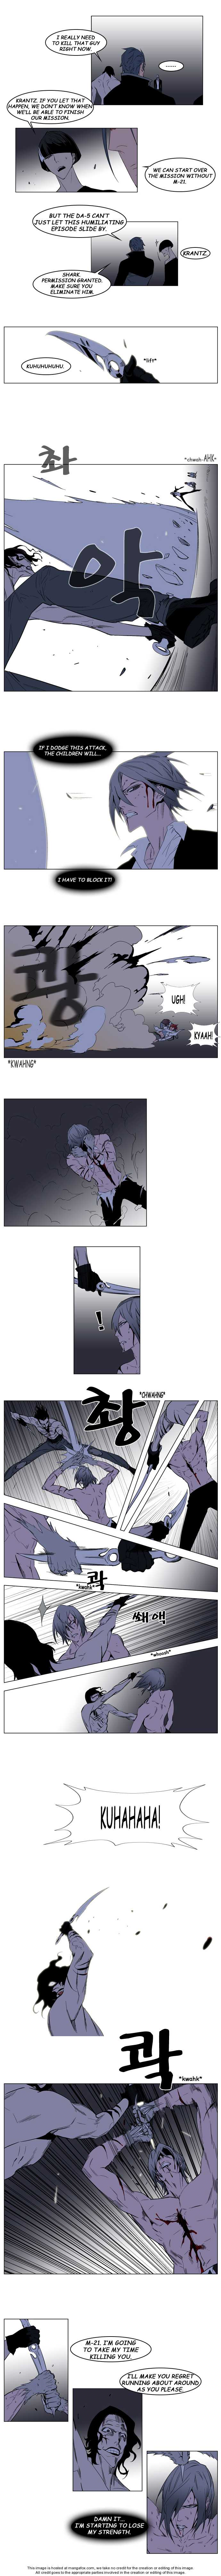 Noblesse 129 Page 3